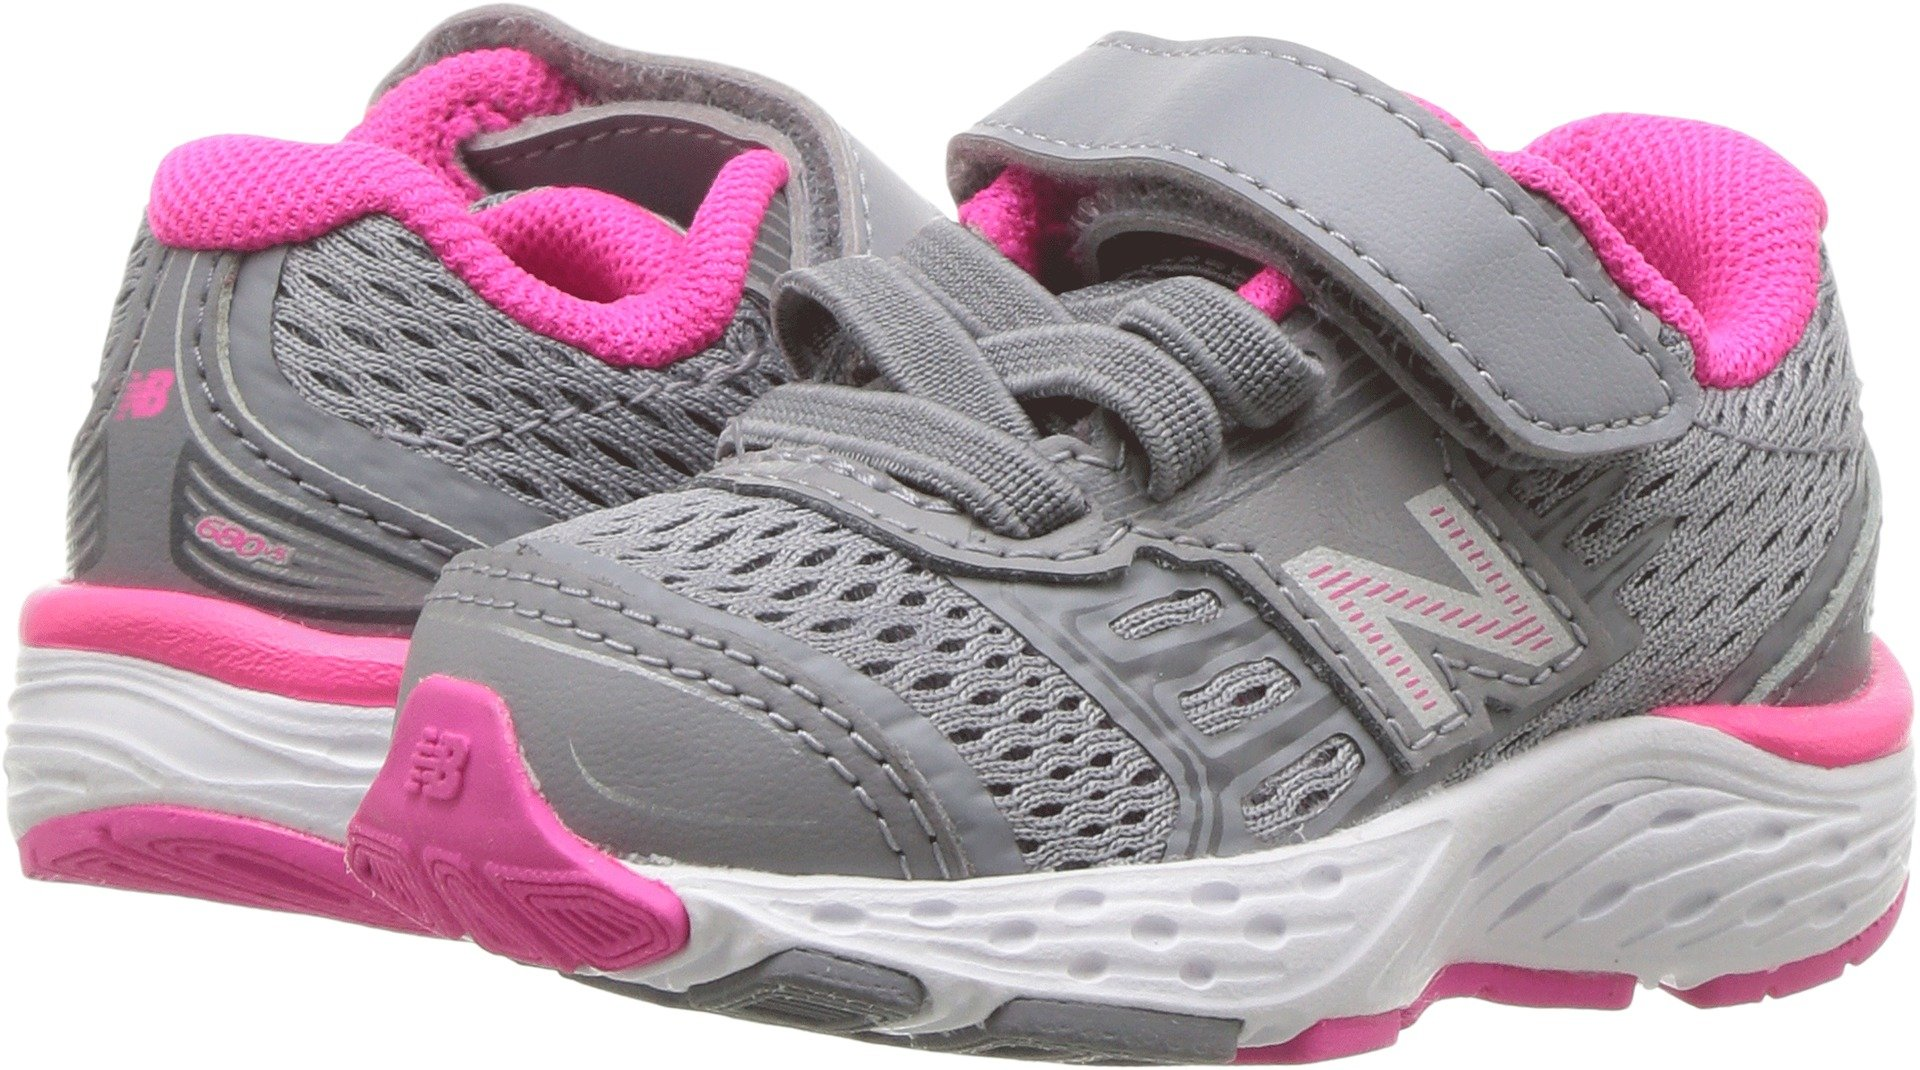 New Balance Girls' 680V5 Hook and Loop Running Shoe, Steel/Pink Glo, 8 M US Toddler